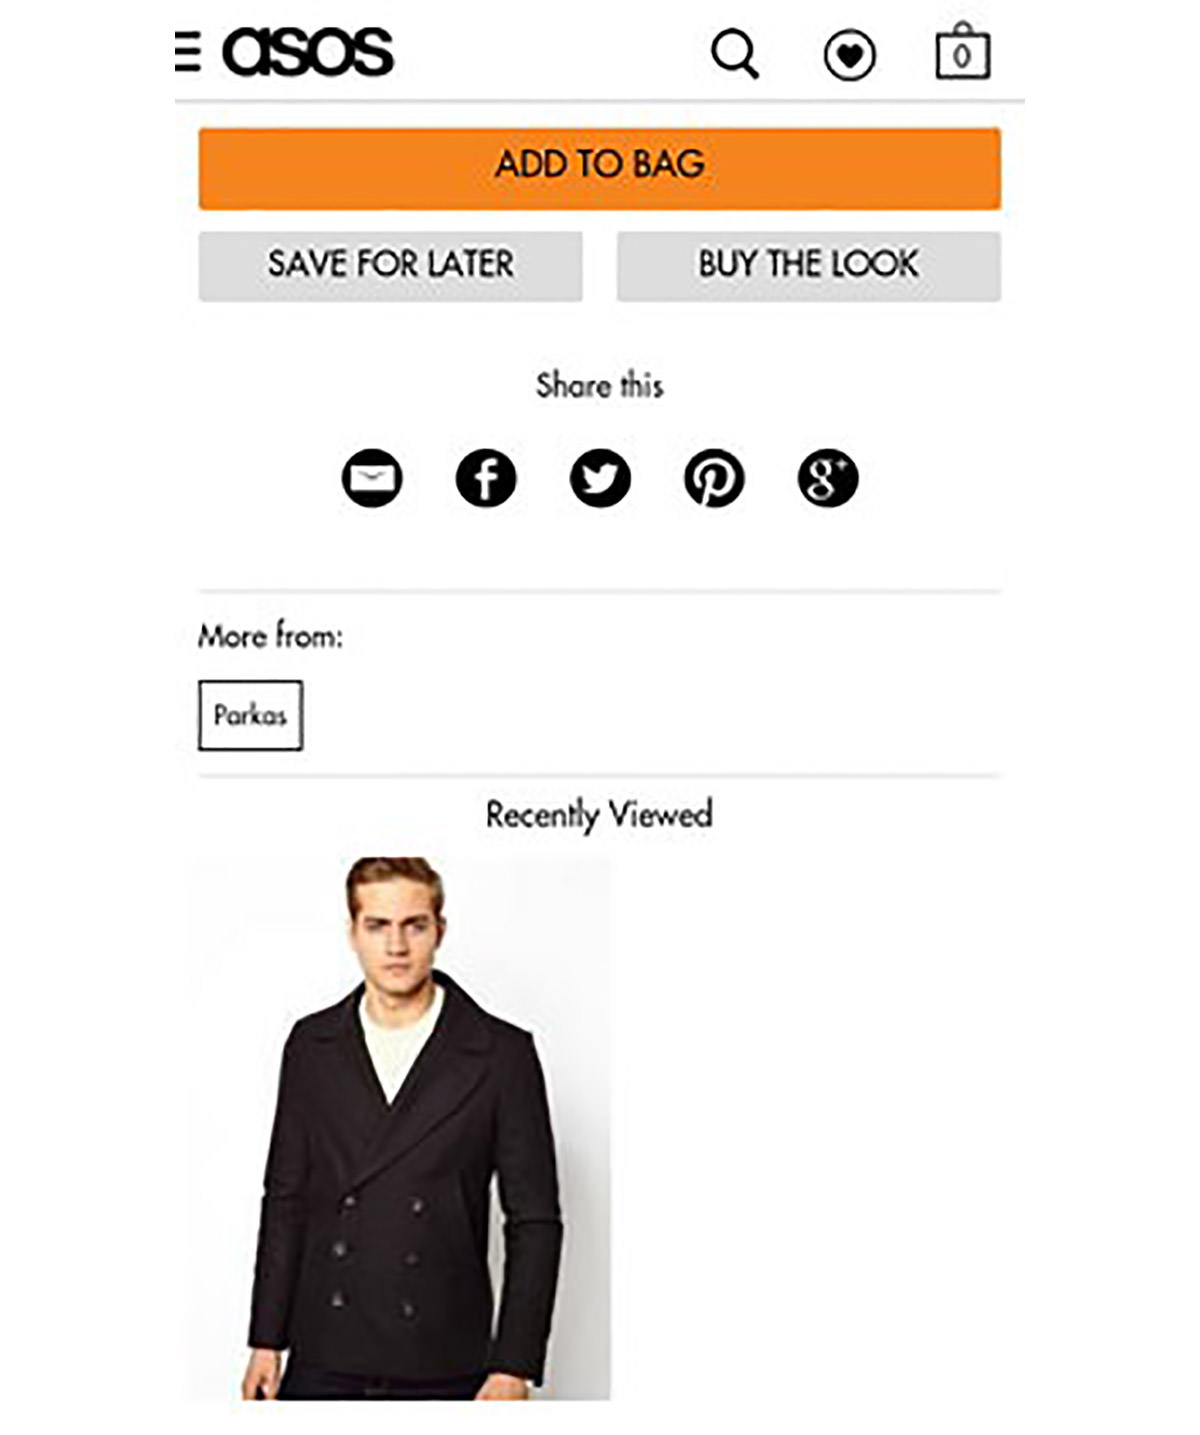 asos recently viewed items page